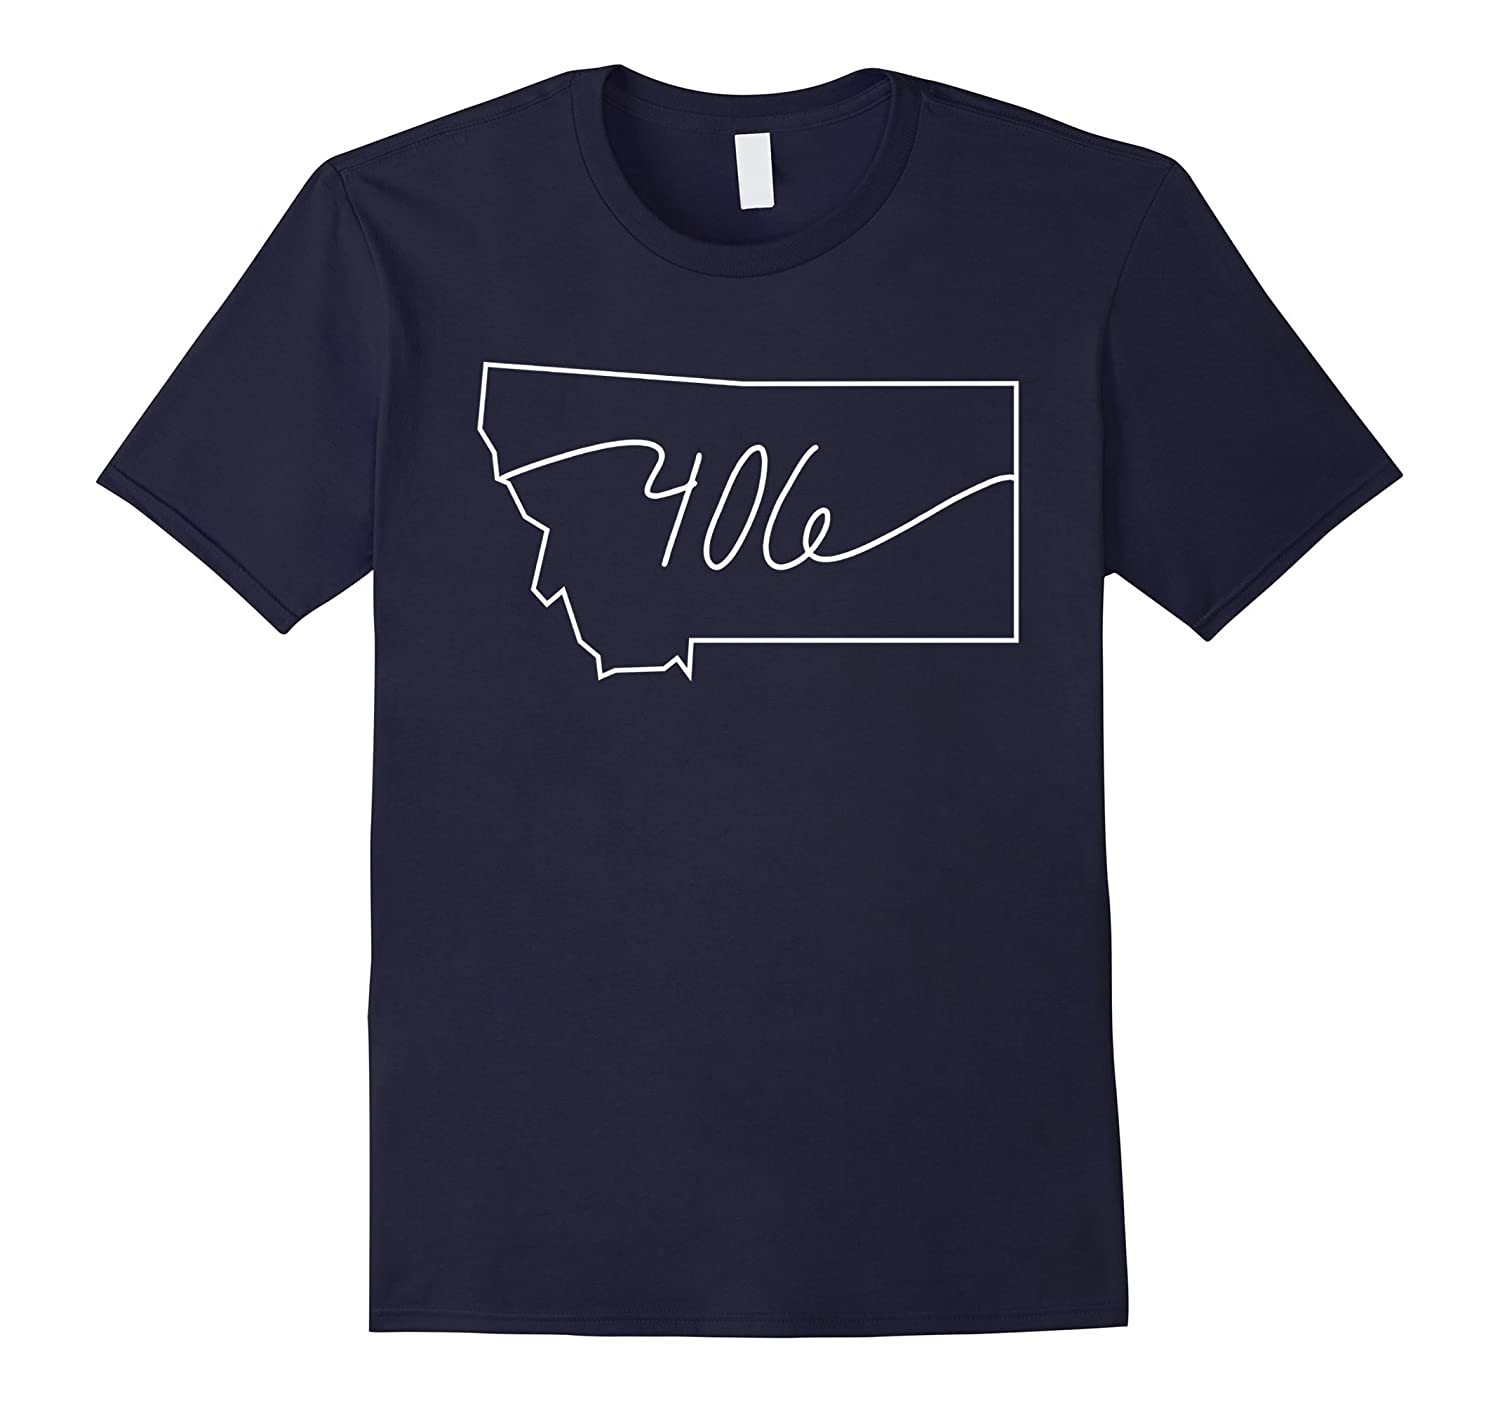 406 Montana T-Shirt State Local Pride Home Womens Mens Kids-T-Shirt